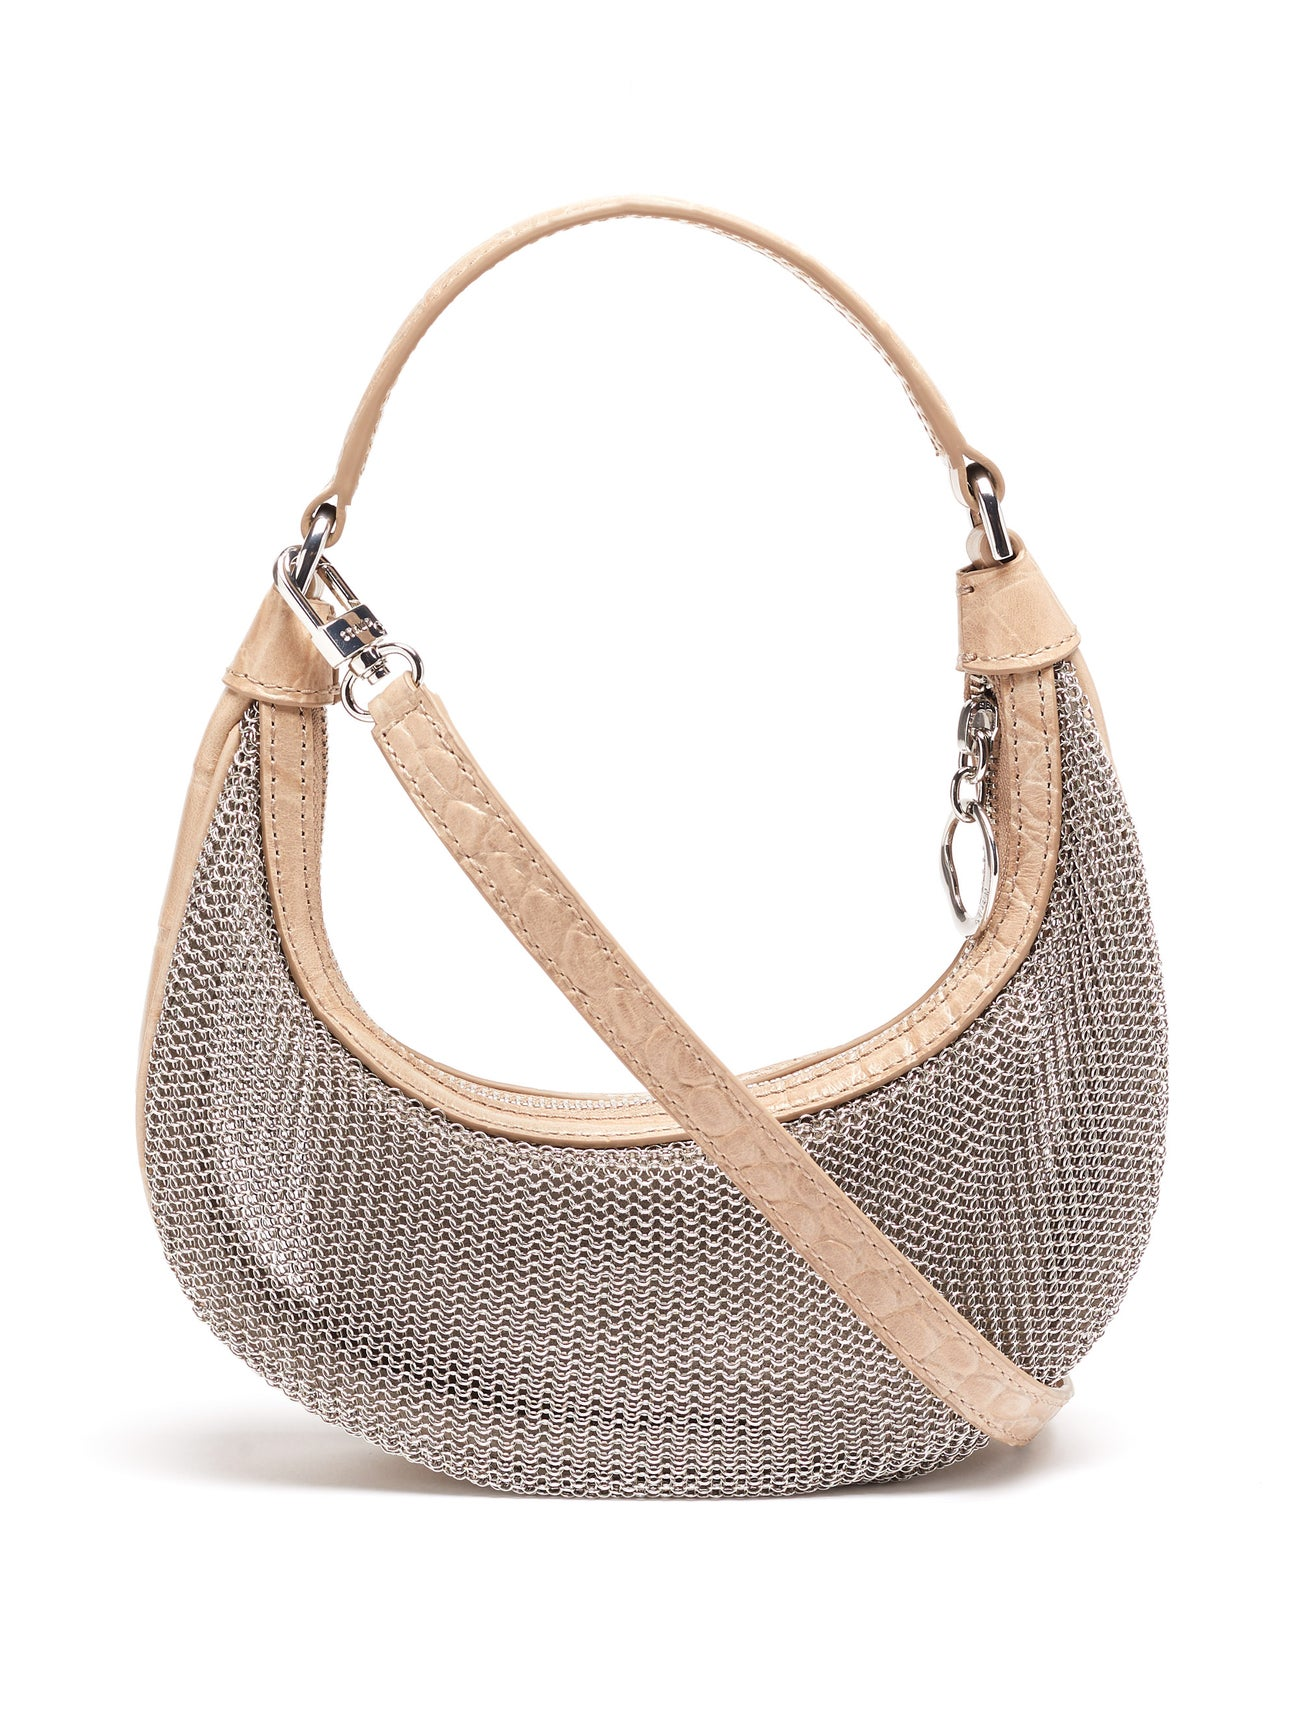 Sasha mini chainmail and croc-effect leather bag by Staud, available on matchesfashion.com for $225 Kylie Jenner Bags Exact Product